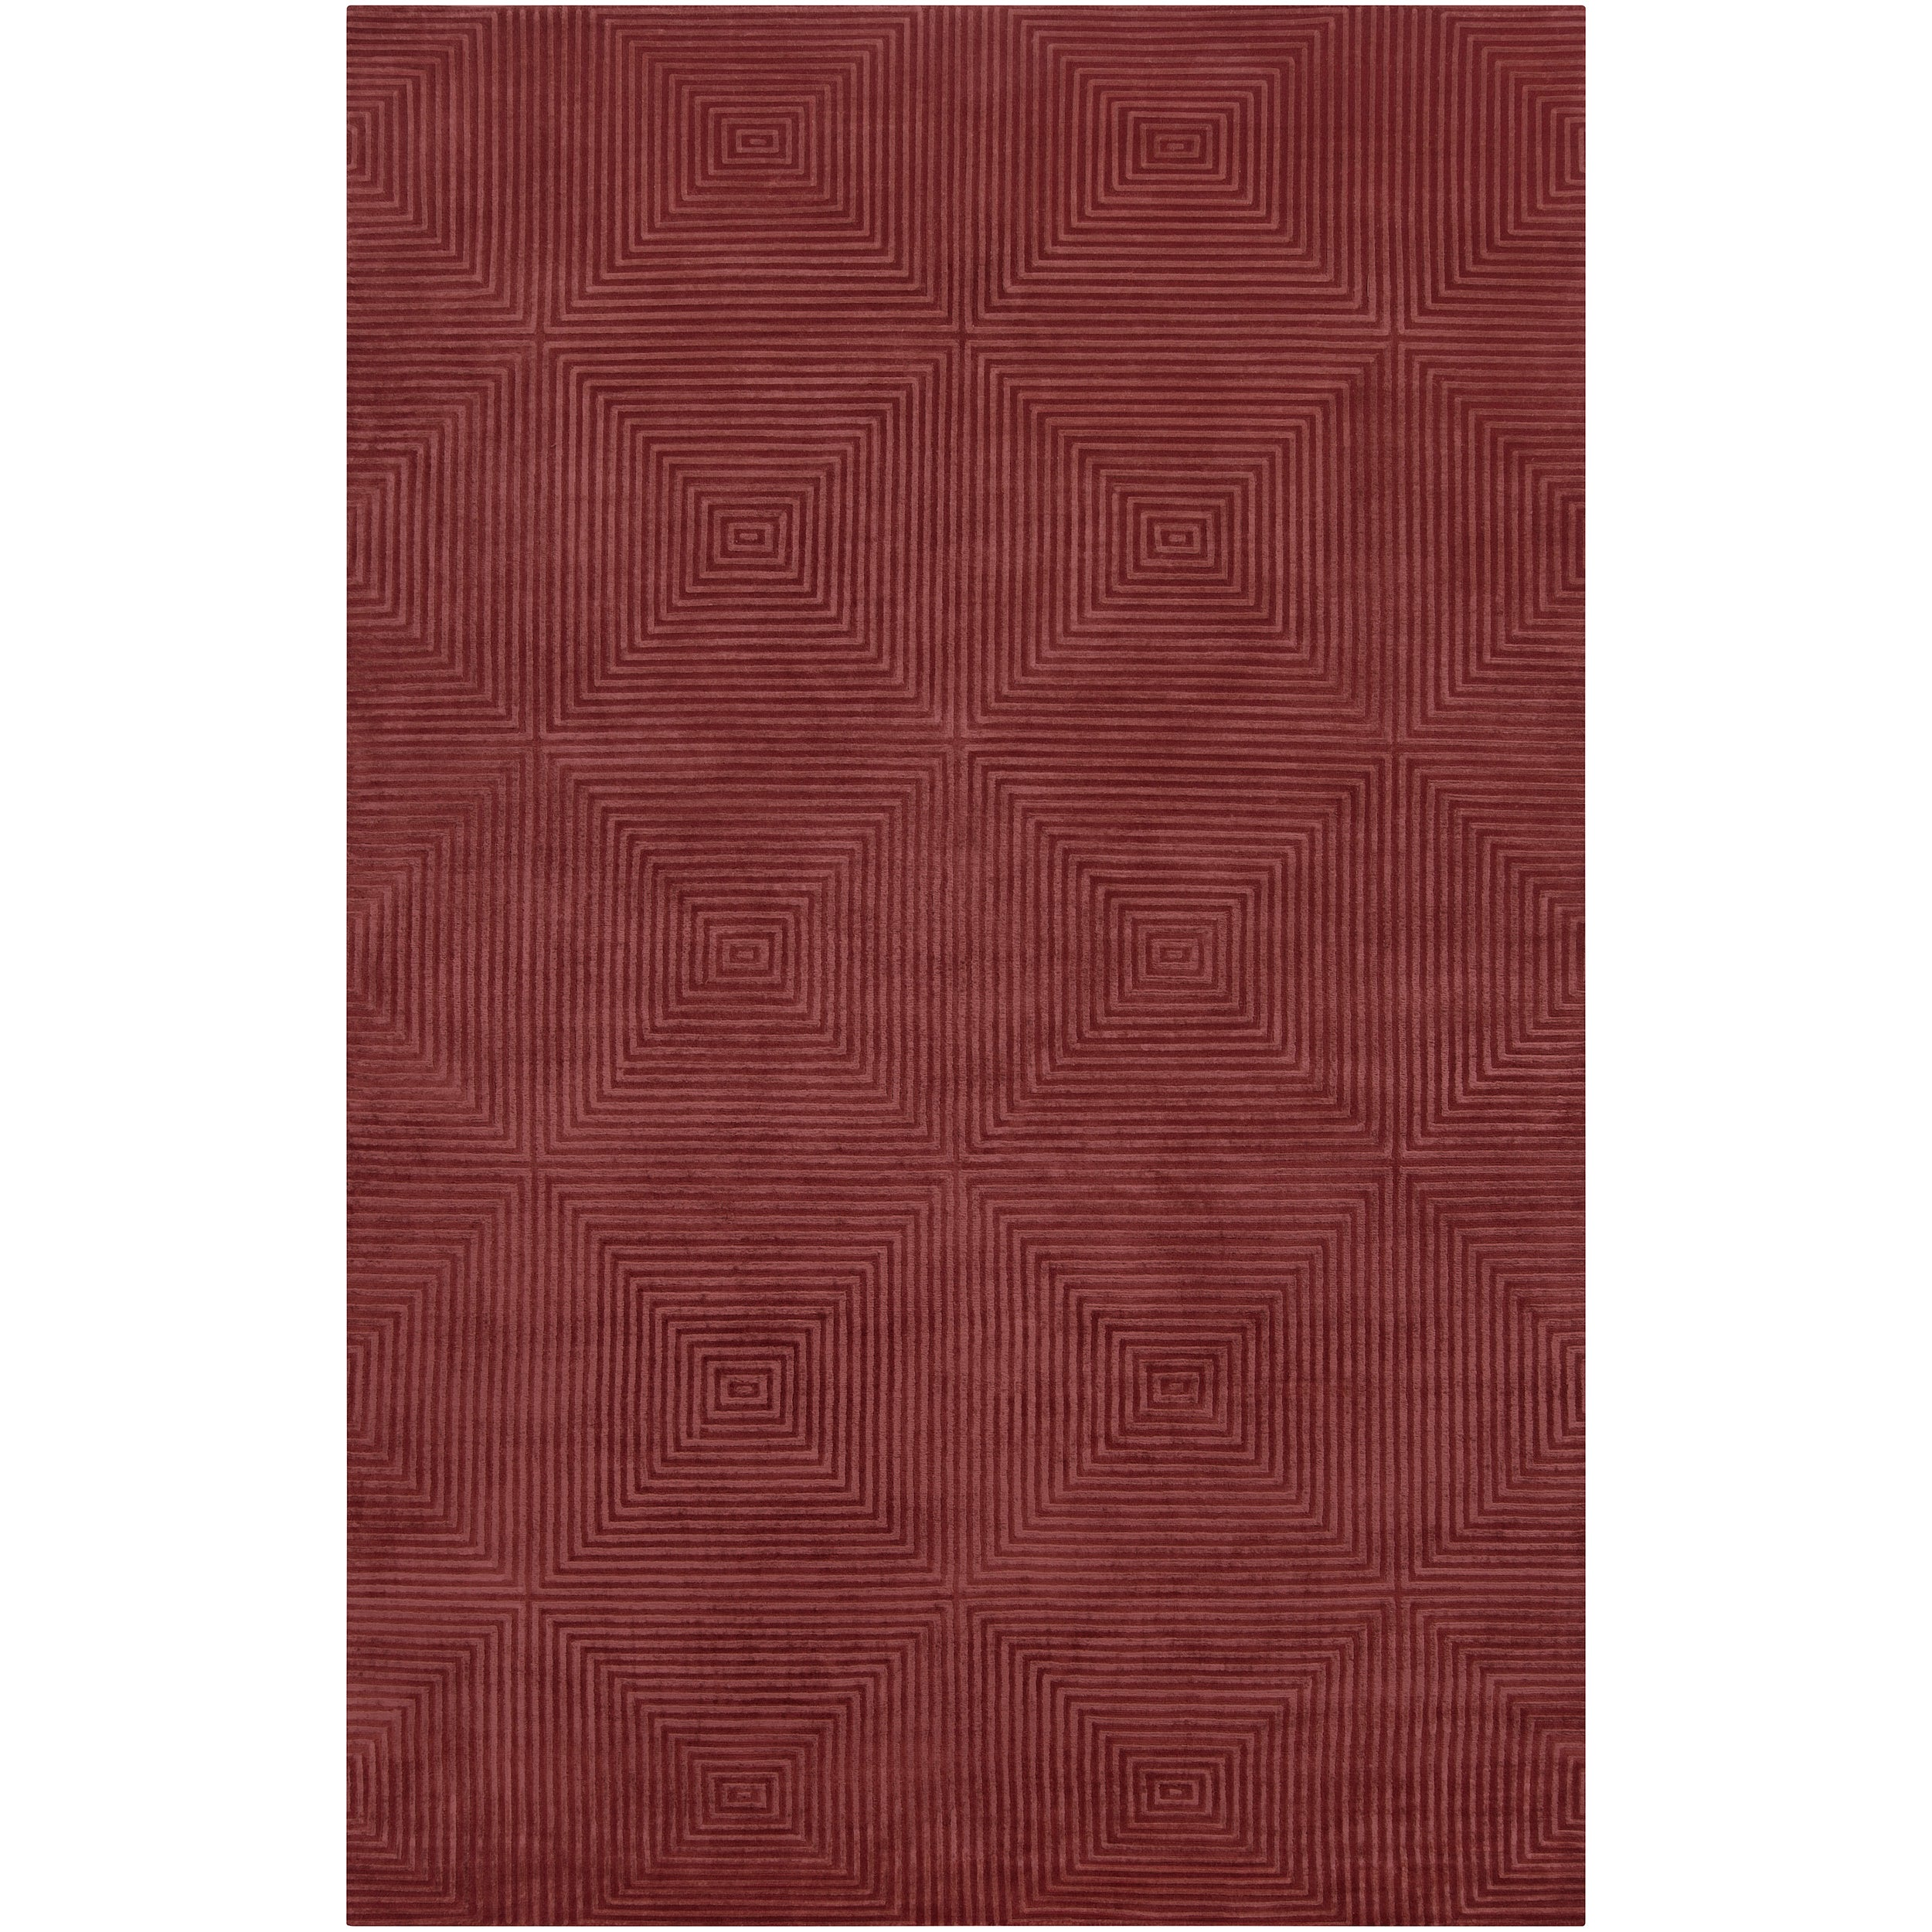 Hand-knotted Andes Geometric Wool Area Rug - 5' x 8'